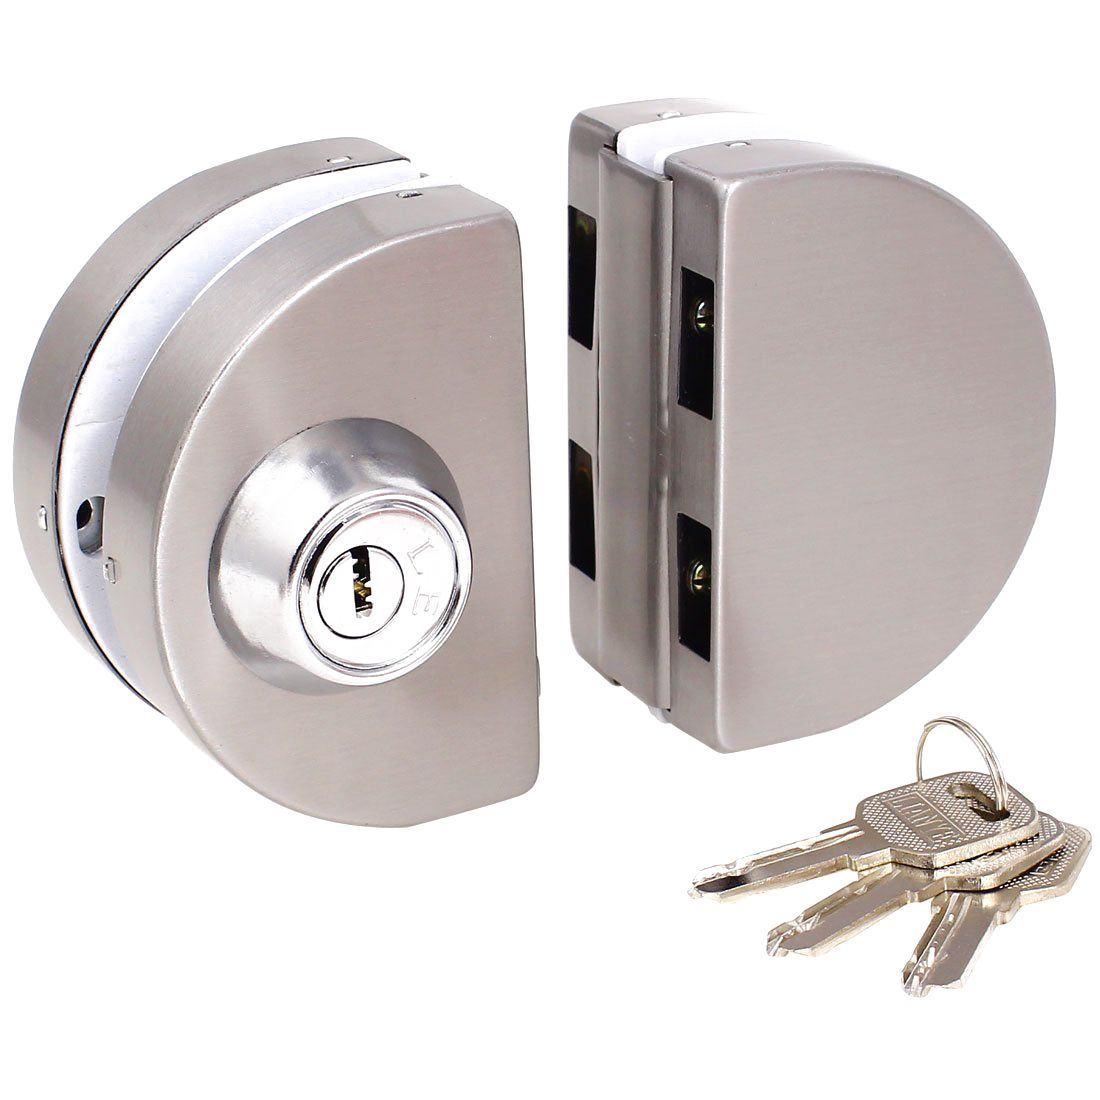 Dhdl Entry Gate 10 12mm Glass Swing Push Sliding Door Lock With Keys Entry Gates Sliding Doors Door Locks